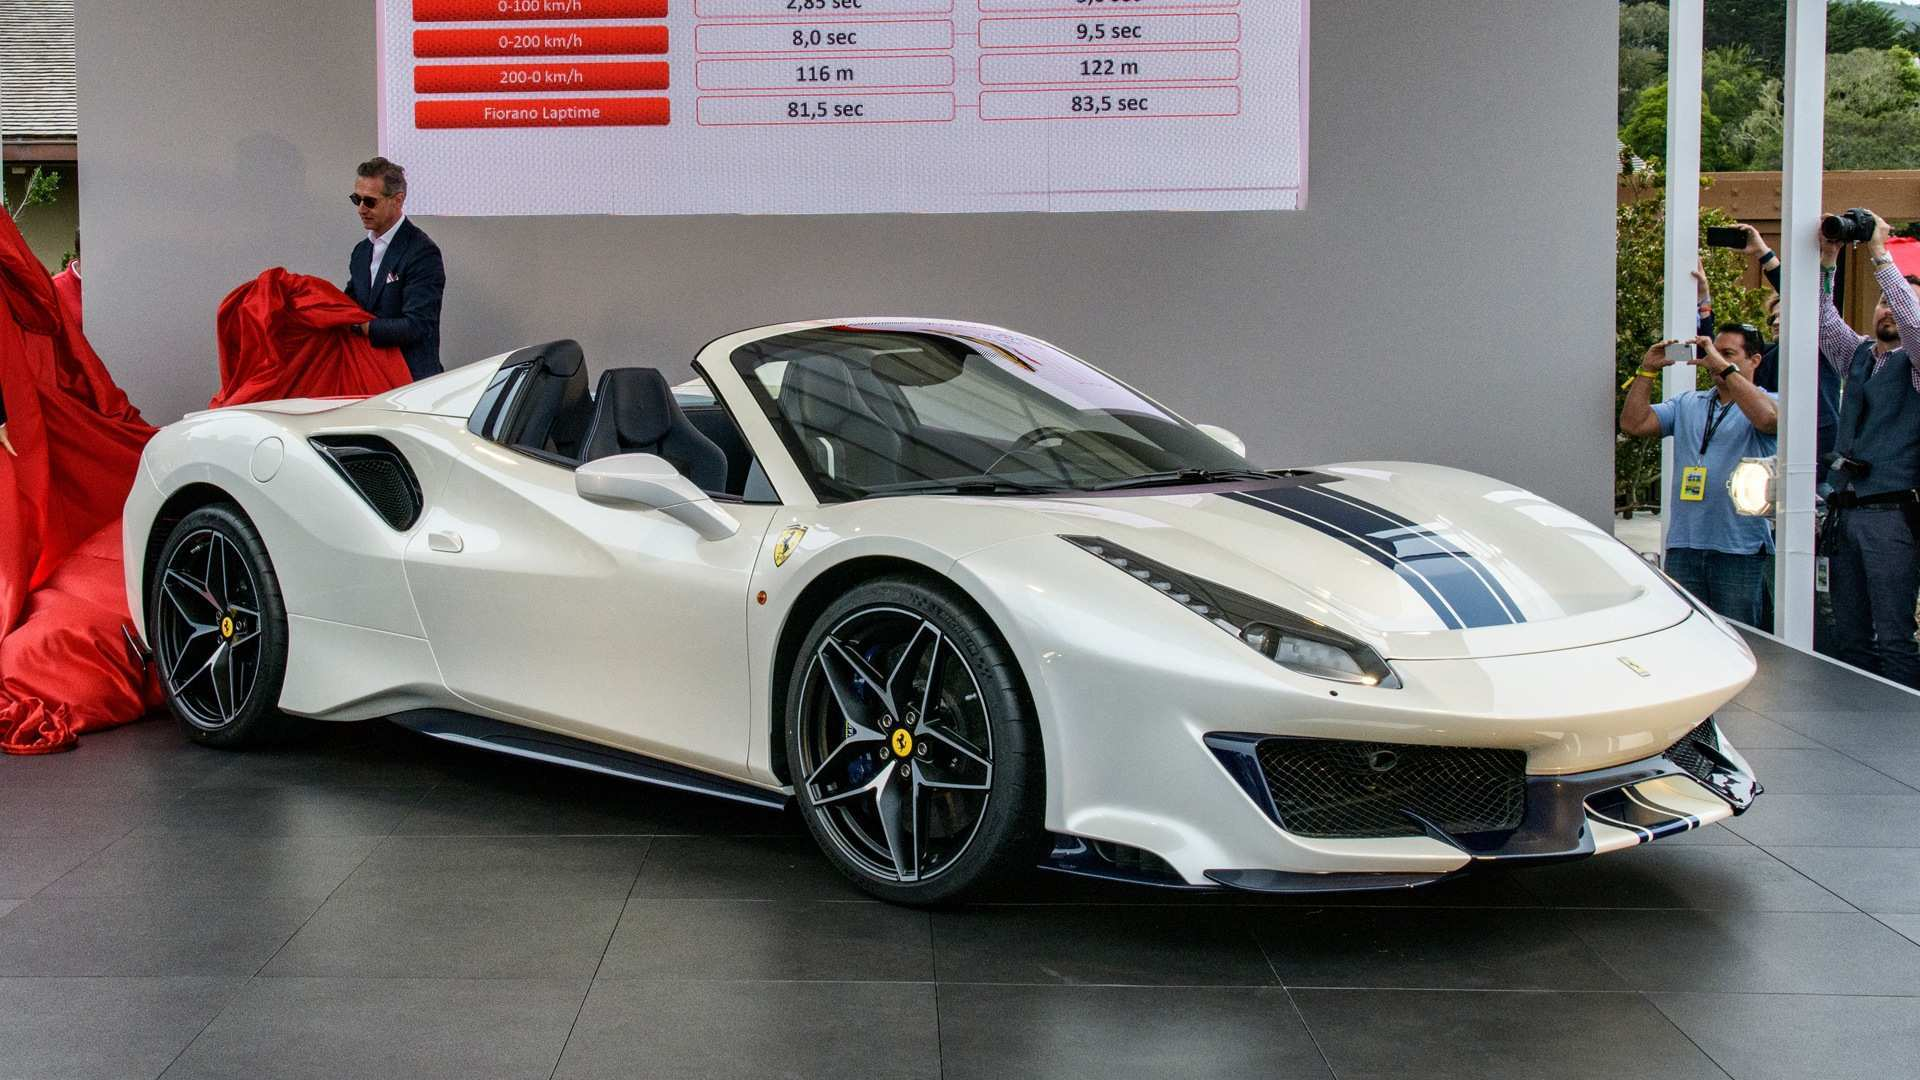 96 Gallery of 2020 Ferrari 488 Pista Images for 2020 Ferrari 488 Pista